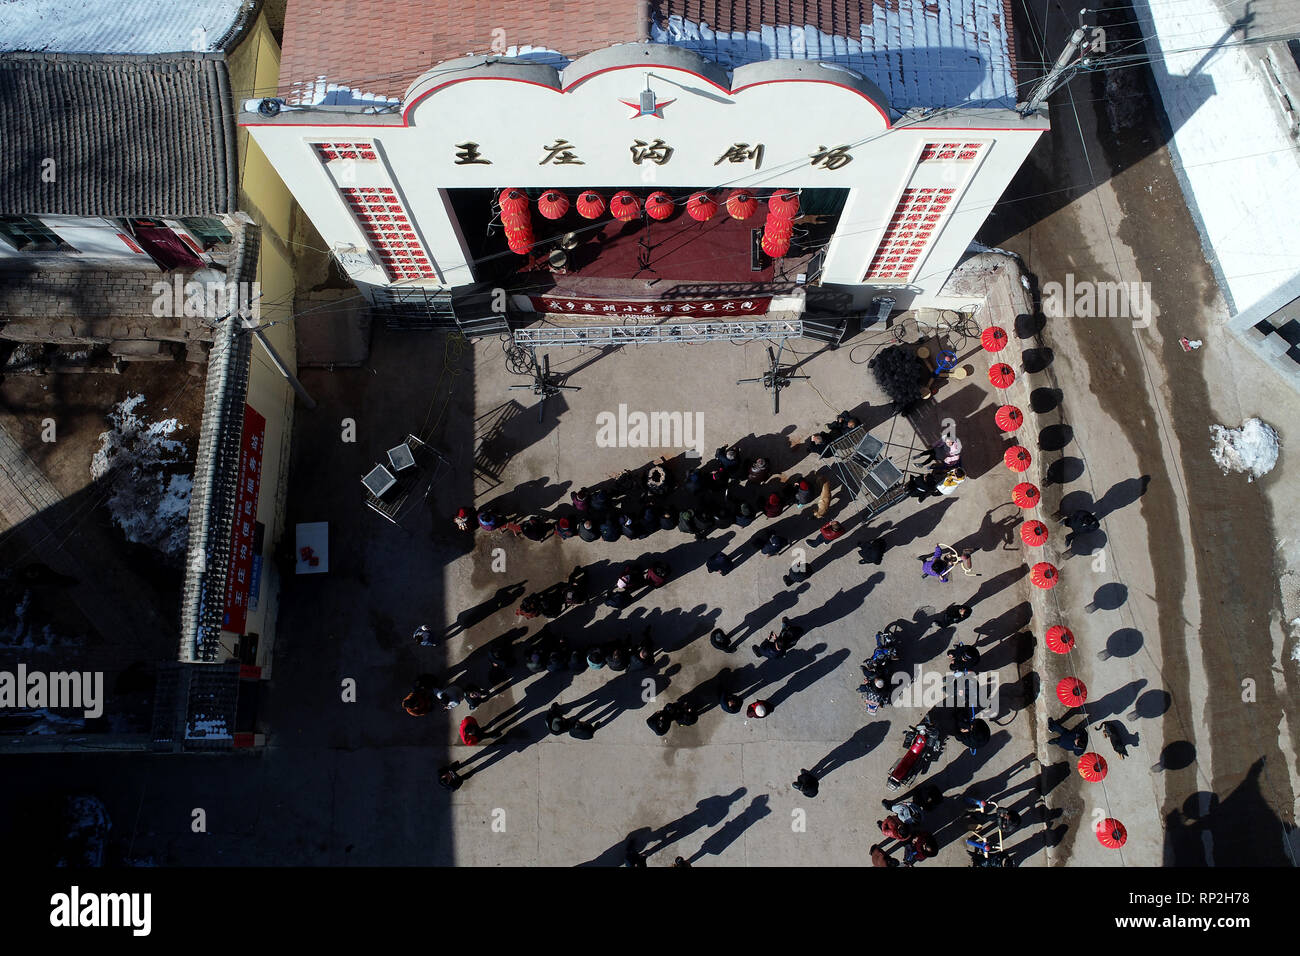 (190220) -- WUXIANG, Feb. 20, 2019 (Xinhua) -- Aerial photo shows villagers watching performance at an open air theater in Wangzhuanggou Village, Wuxiang County of north China's Shanxi Province, Feb. 16, 2019. For generations, residents of Wangzhuanggou Village barely scraped a living as a result of geographical isolation. However, a great change has been made since a series of poverty relief programs were launched in 2014. The whole village has been lifted out of poverty by the year of 2018 with the per capita annual income rising to 6,100 yuan (907 U.S. dollars) that enables villagers to spe - Stock Image